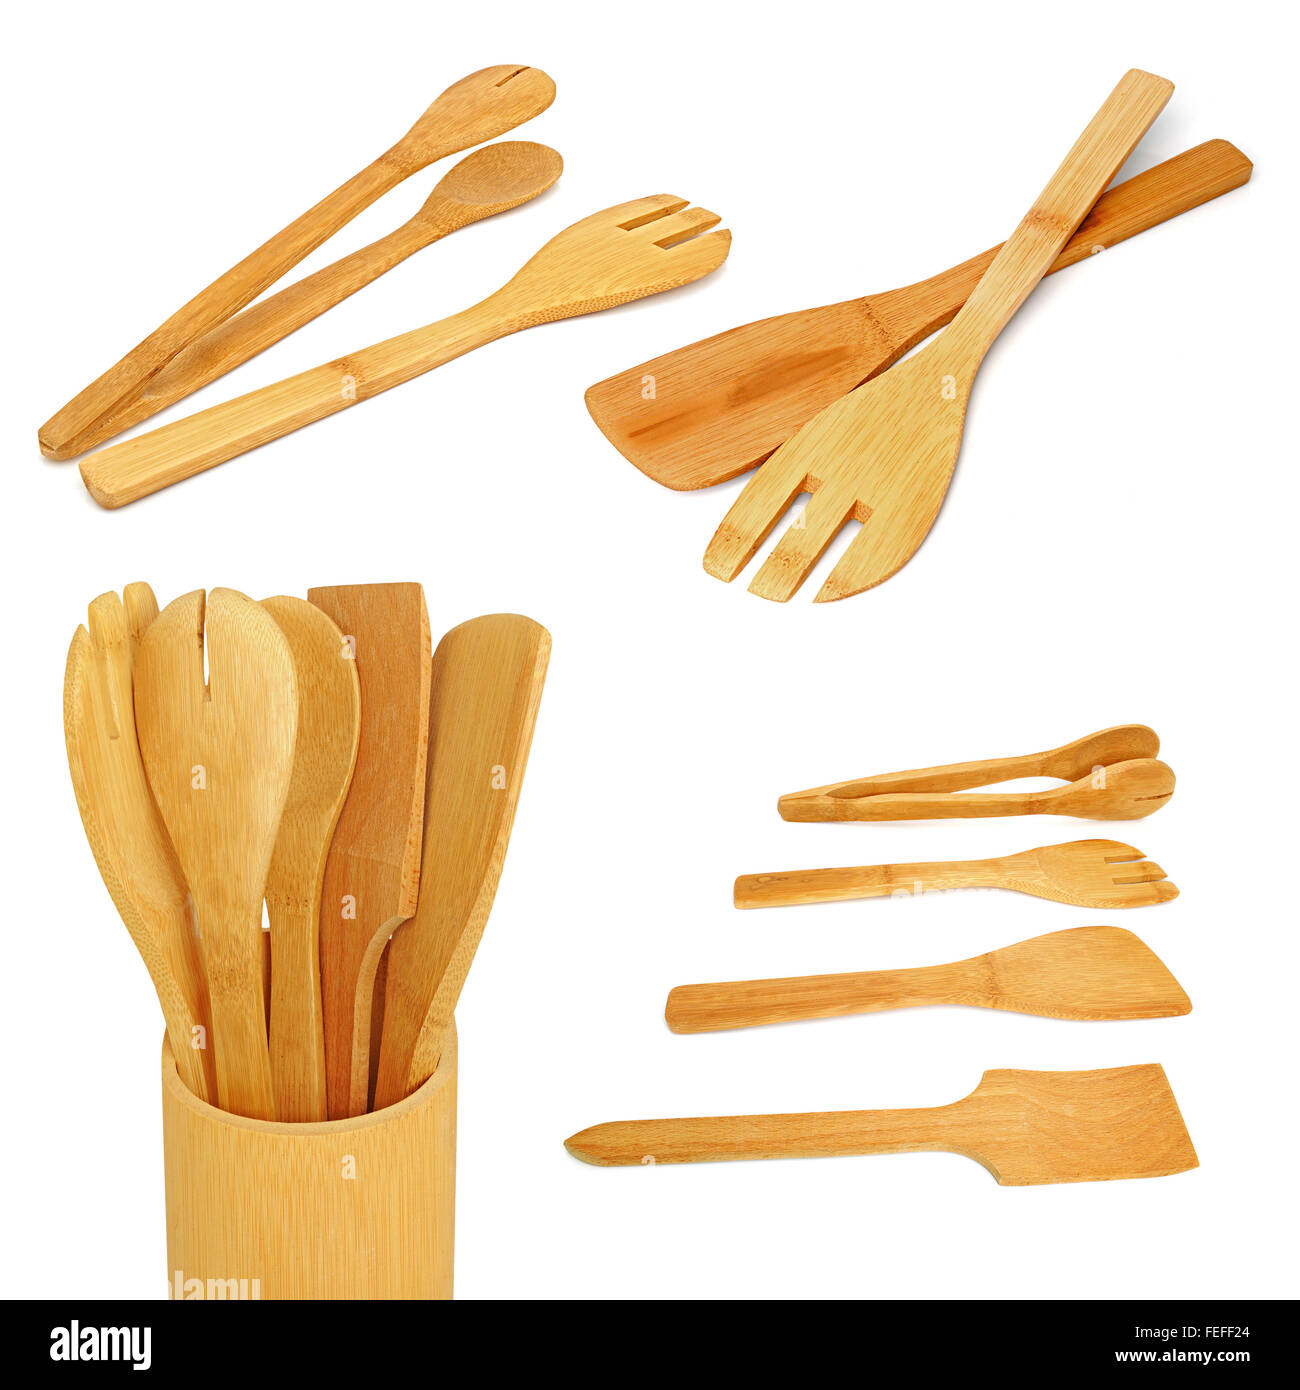 Wooden kitchen utensils on a white background. Collage - Stock Image